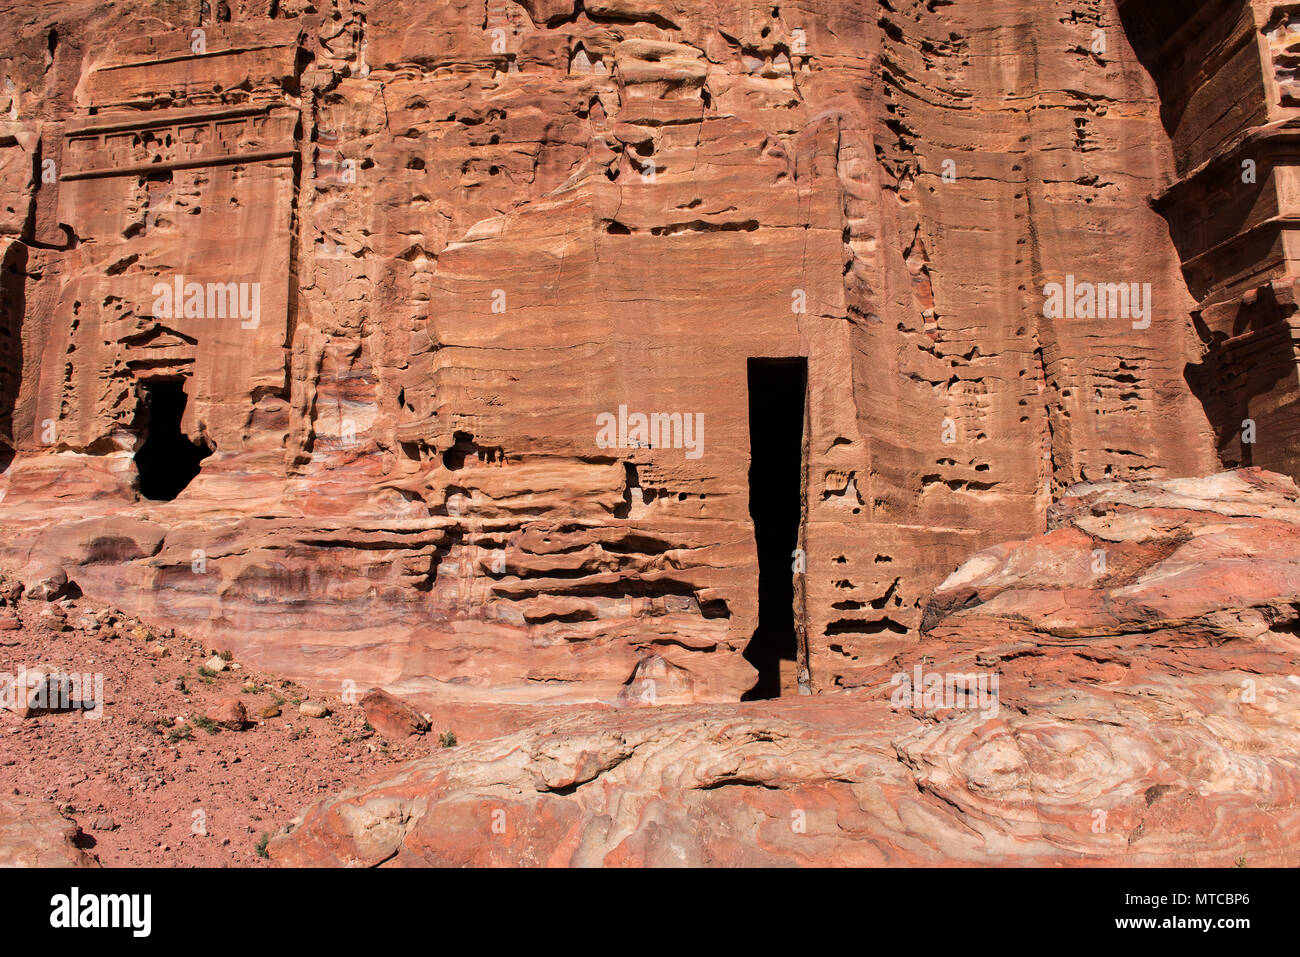 Entrance of a cave, royal tomb in Petra, Jordan. Underground ancient rock carving, used as burial place - Stock Image